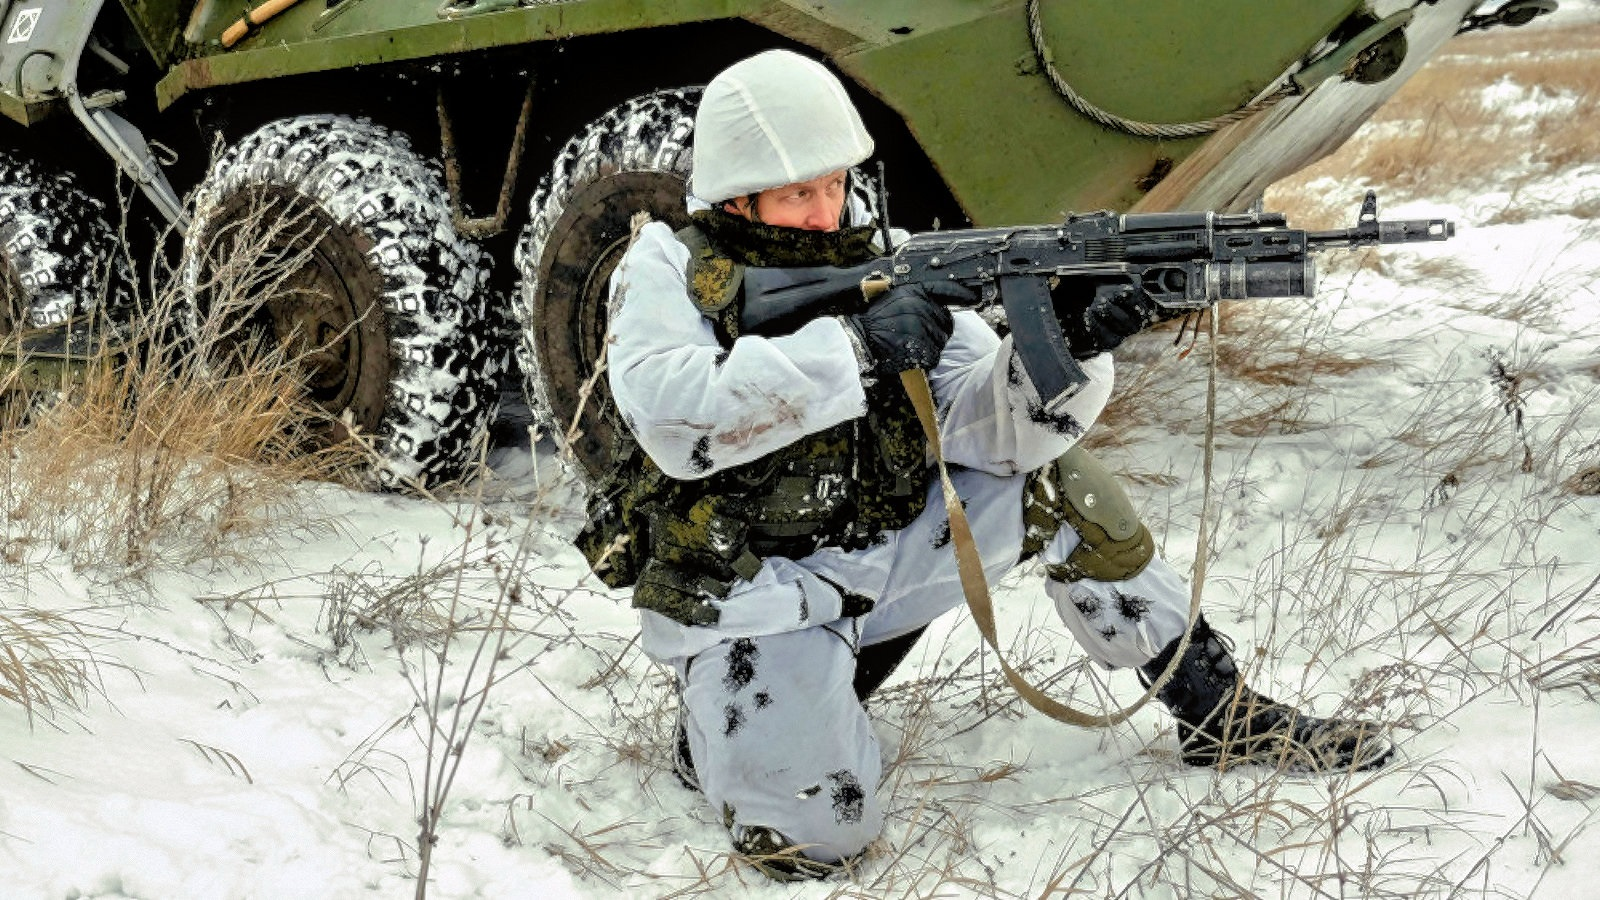 00-russia-soldier-020317